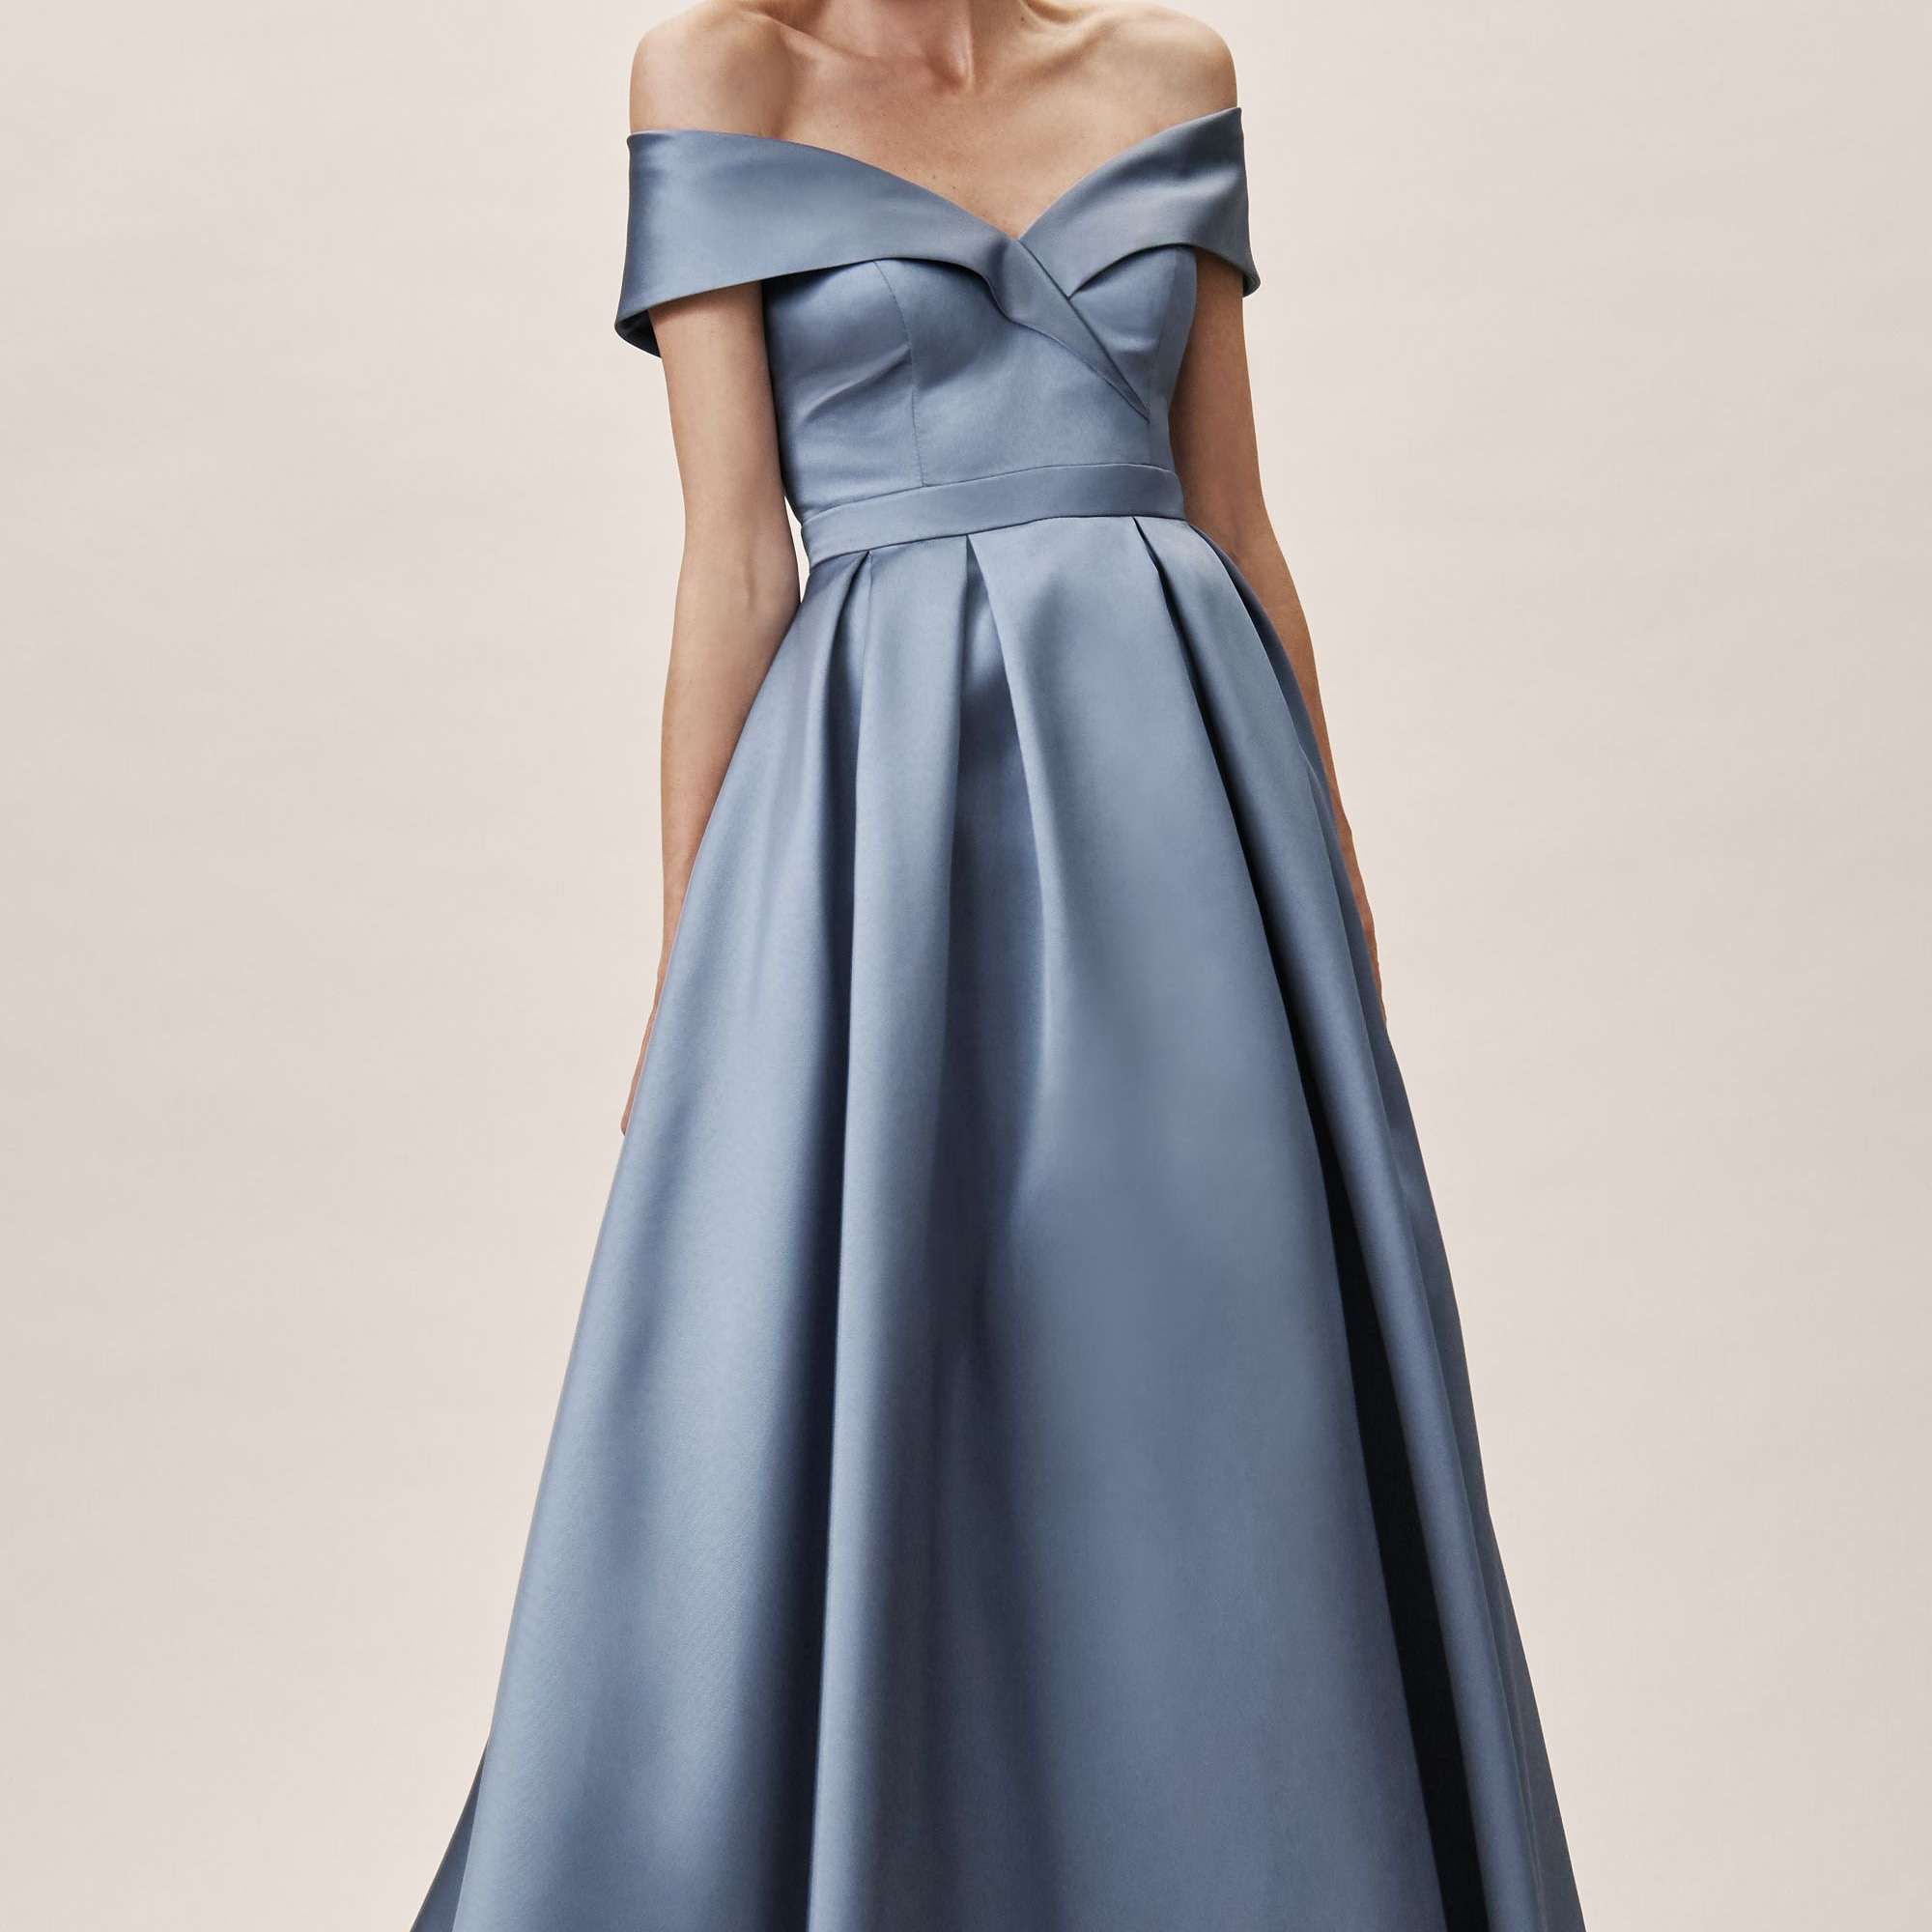 31 Mother Of The Bride Dresses For Every Style